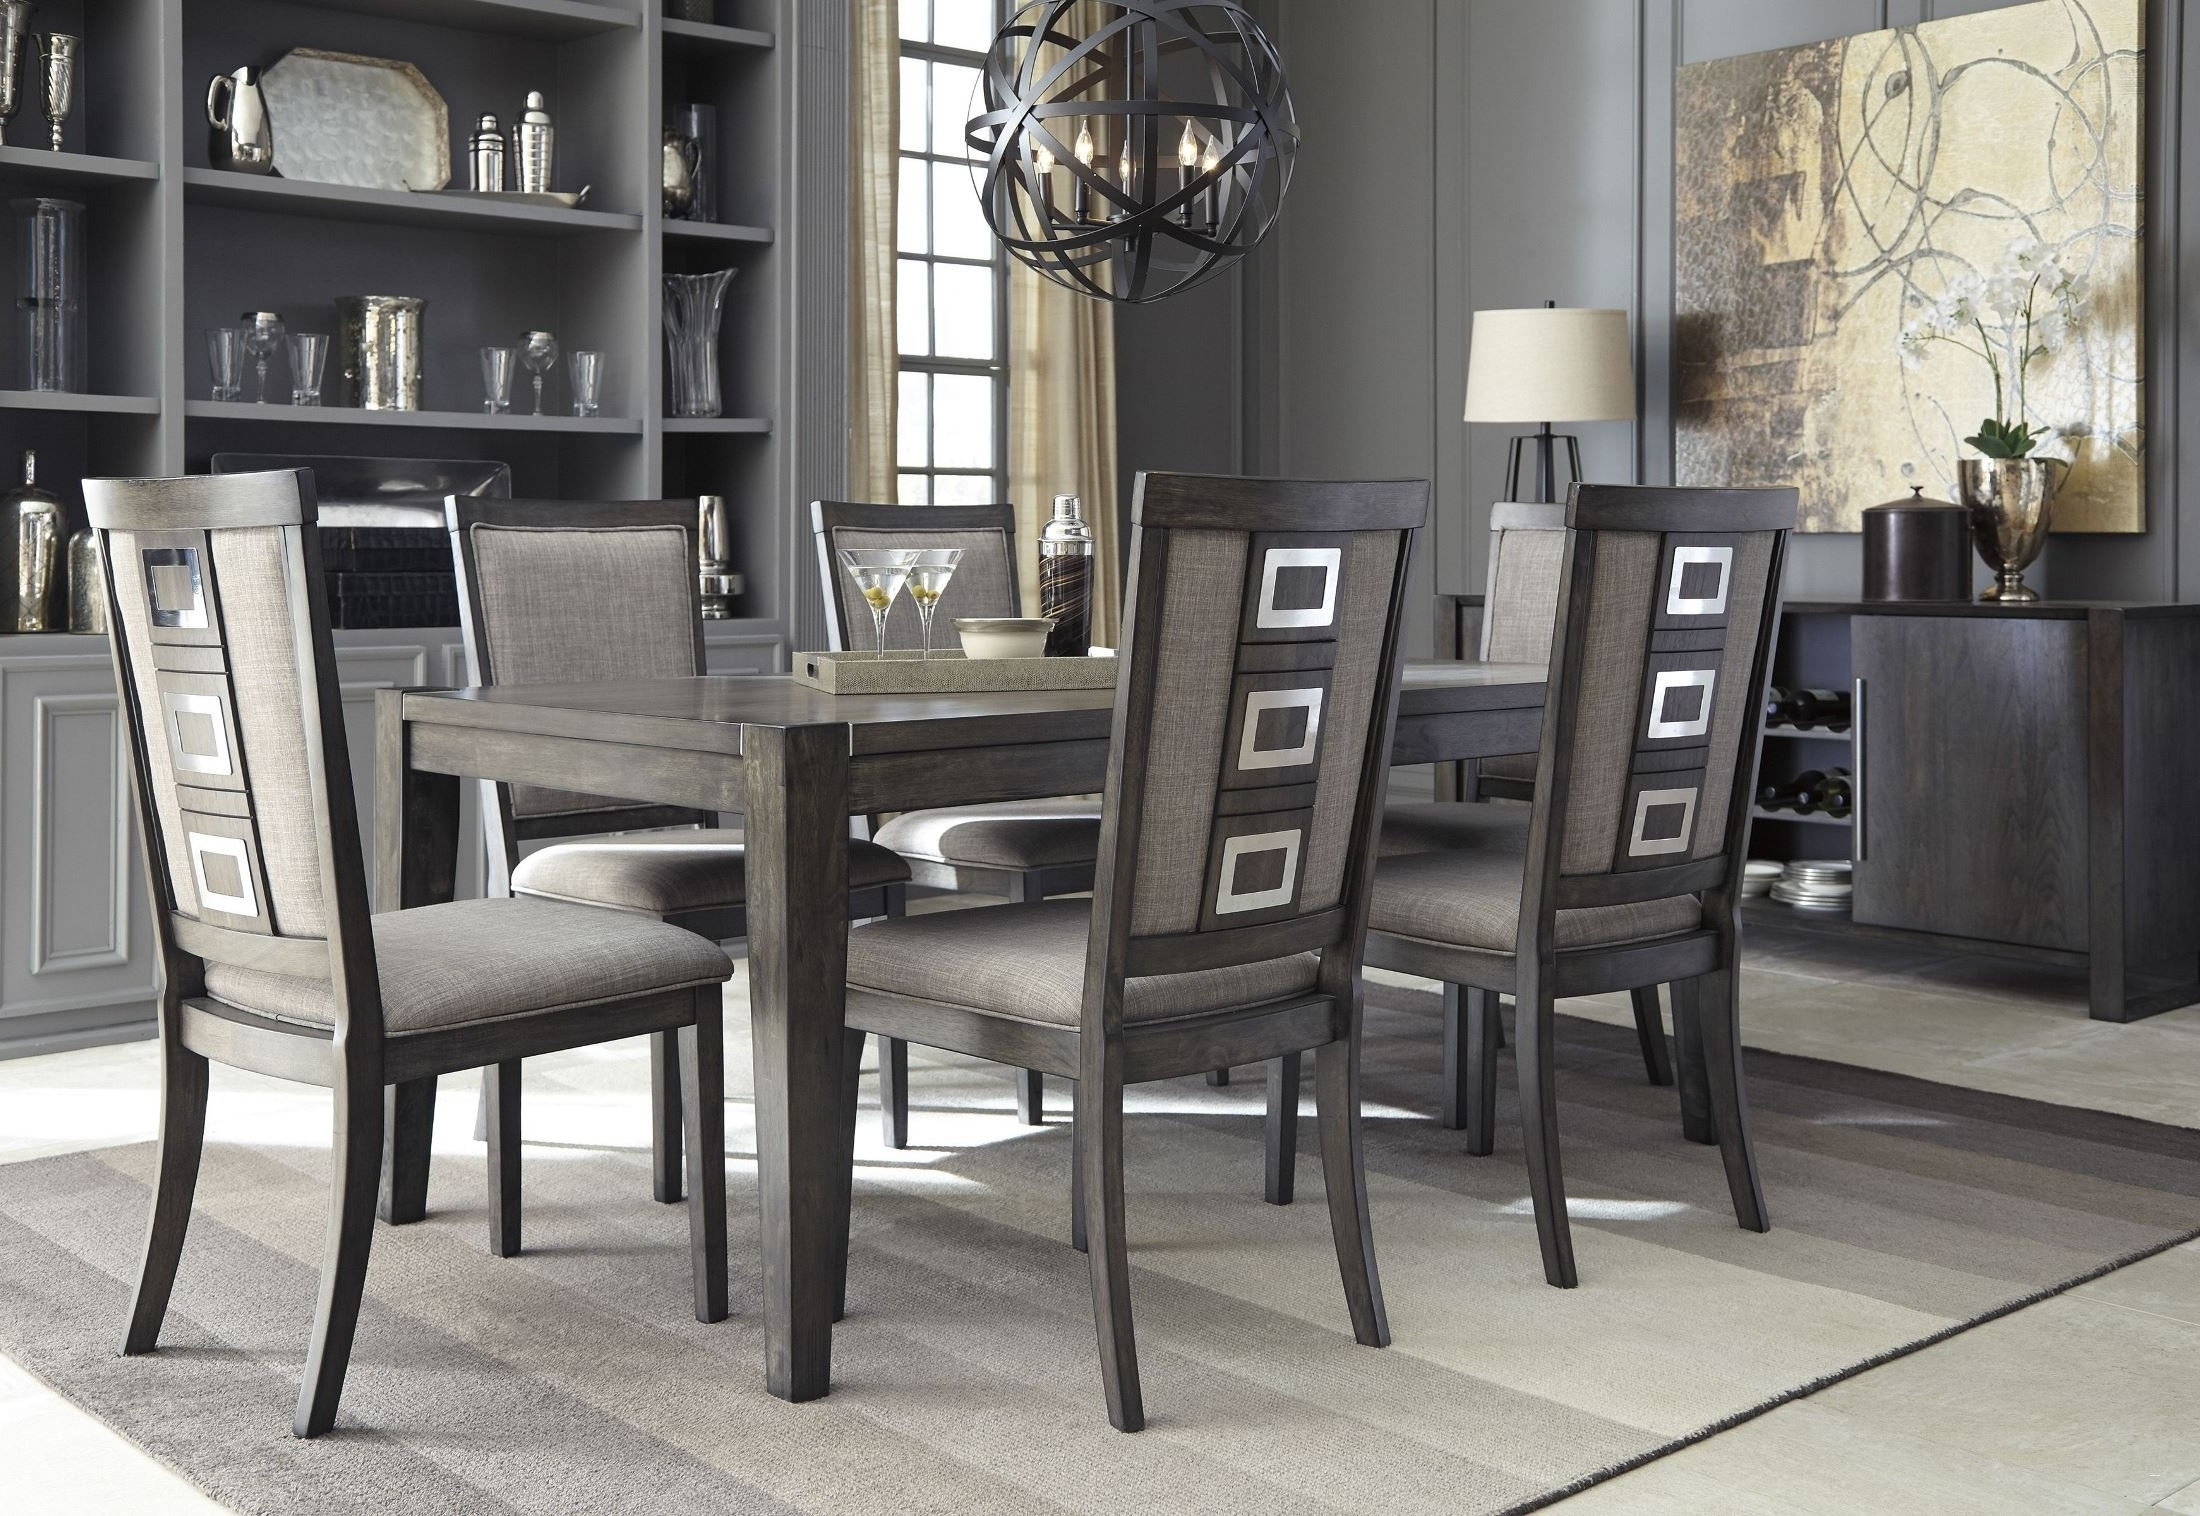 Cora 7 Piece Dining Sets In Favorite Coralayne Dining Room Set Fresh Cheap Dining Room Table Sets (View 8 of 25)